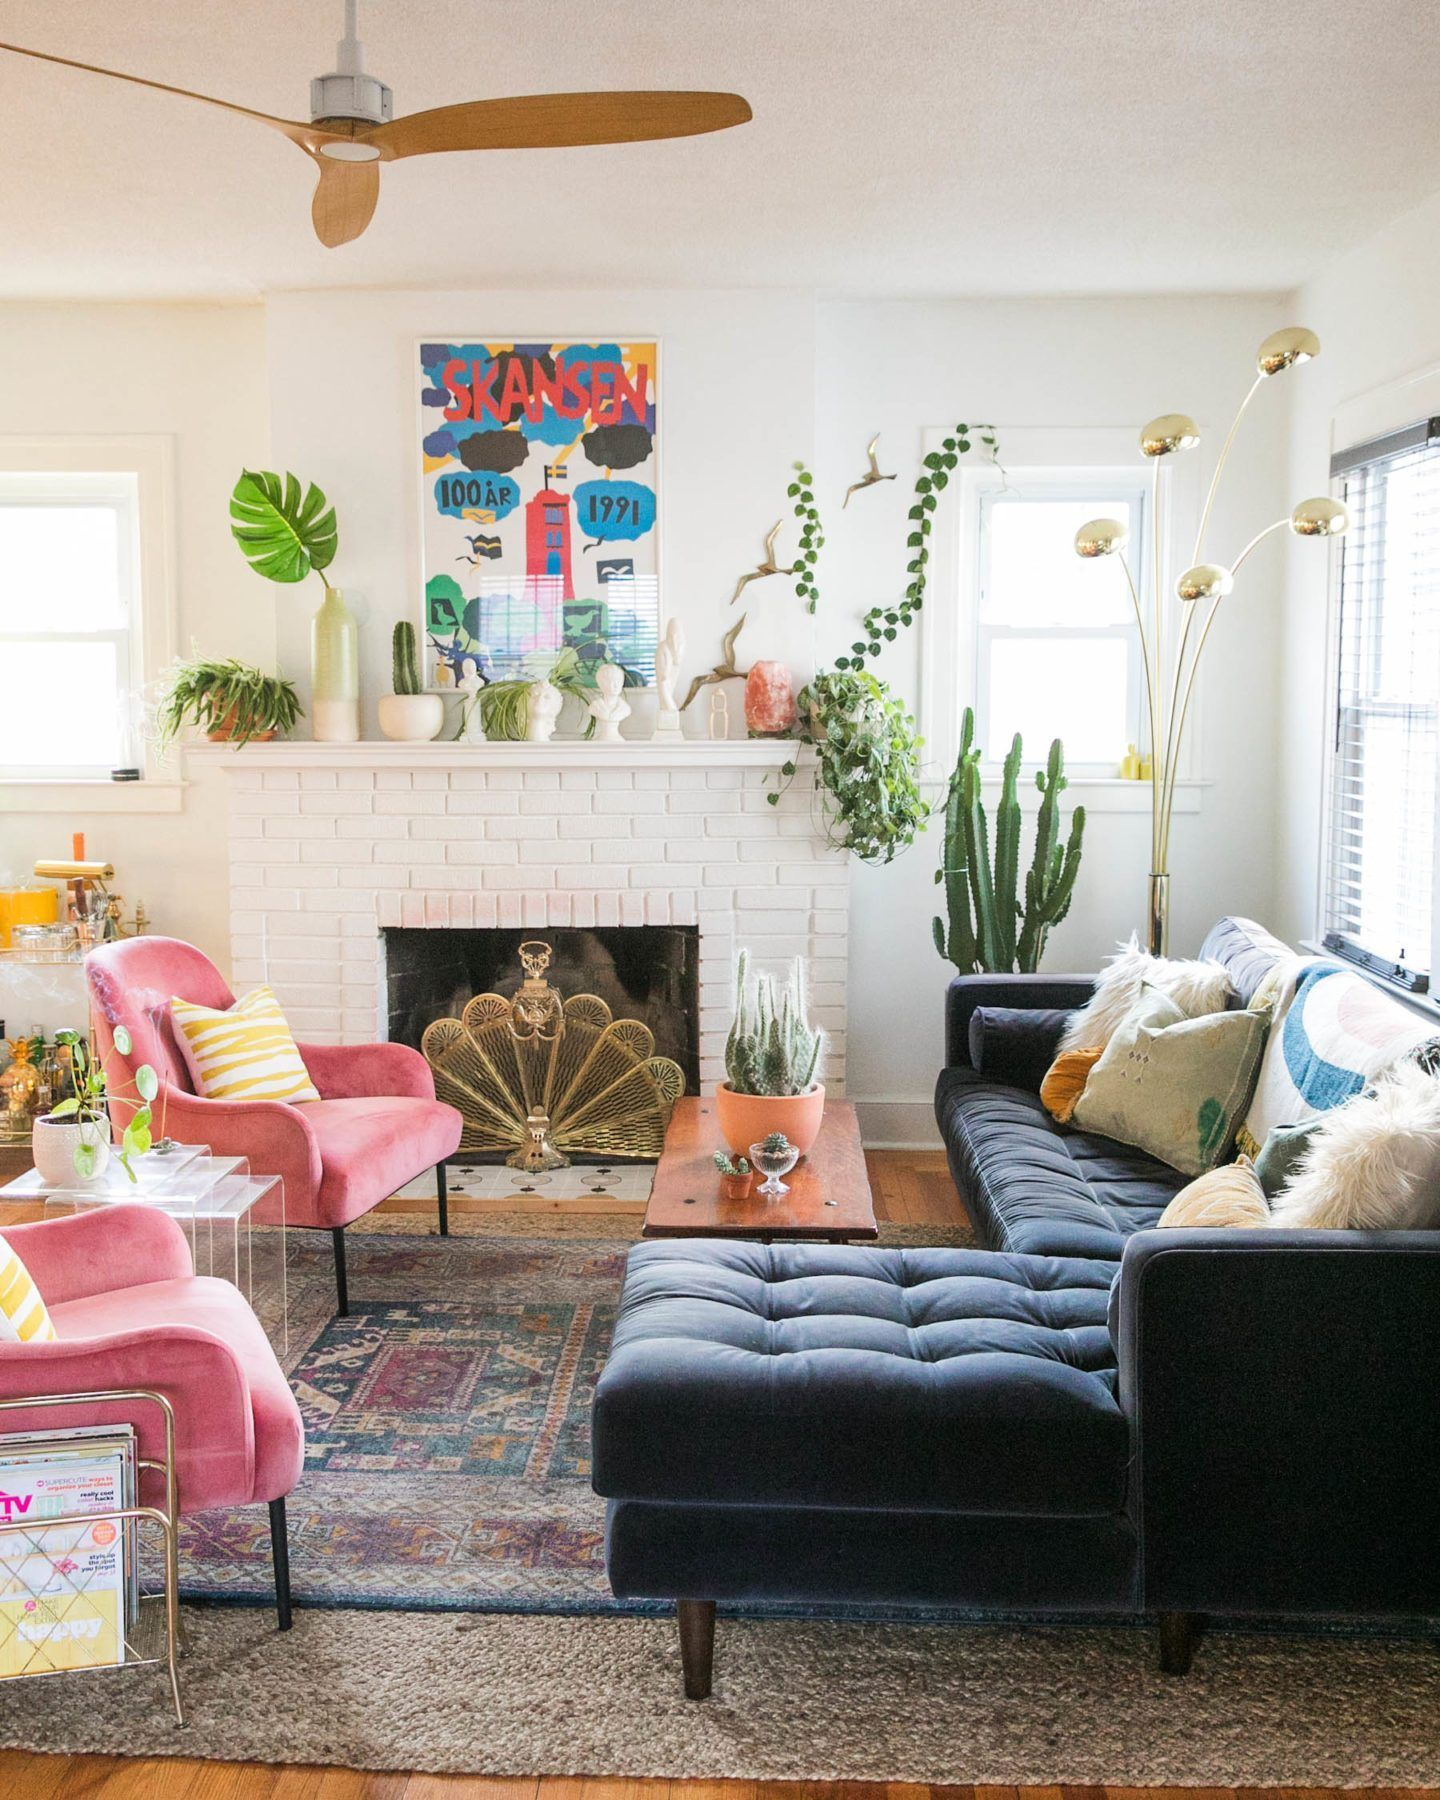 Yes You Can! How to Tile a Fireplace Hearth » Jessica Brigham